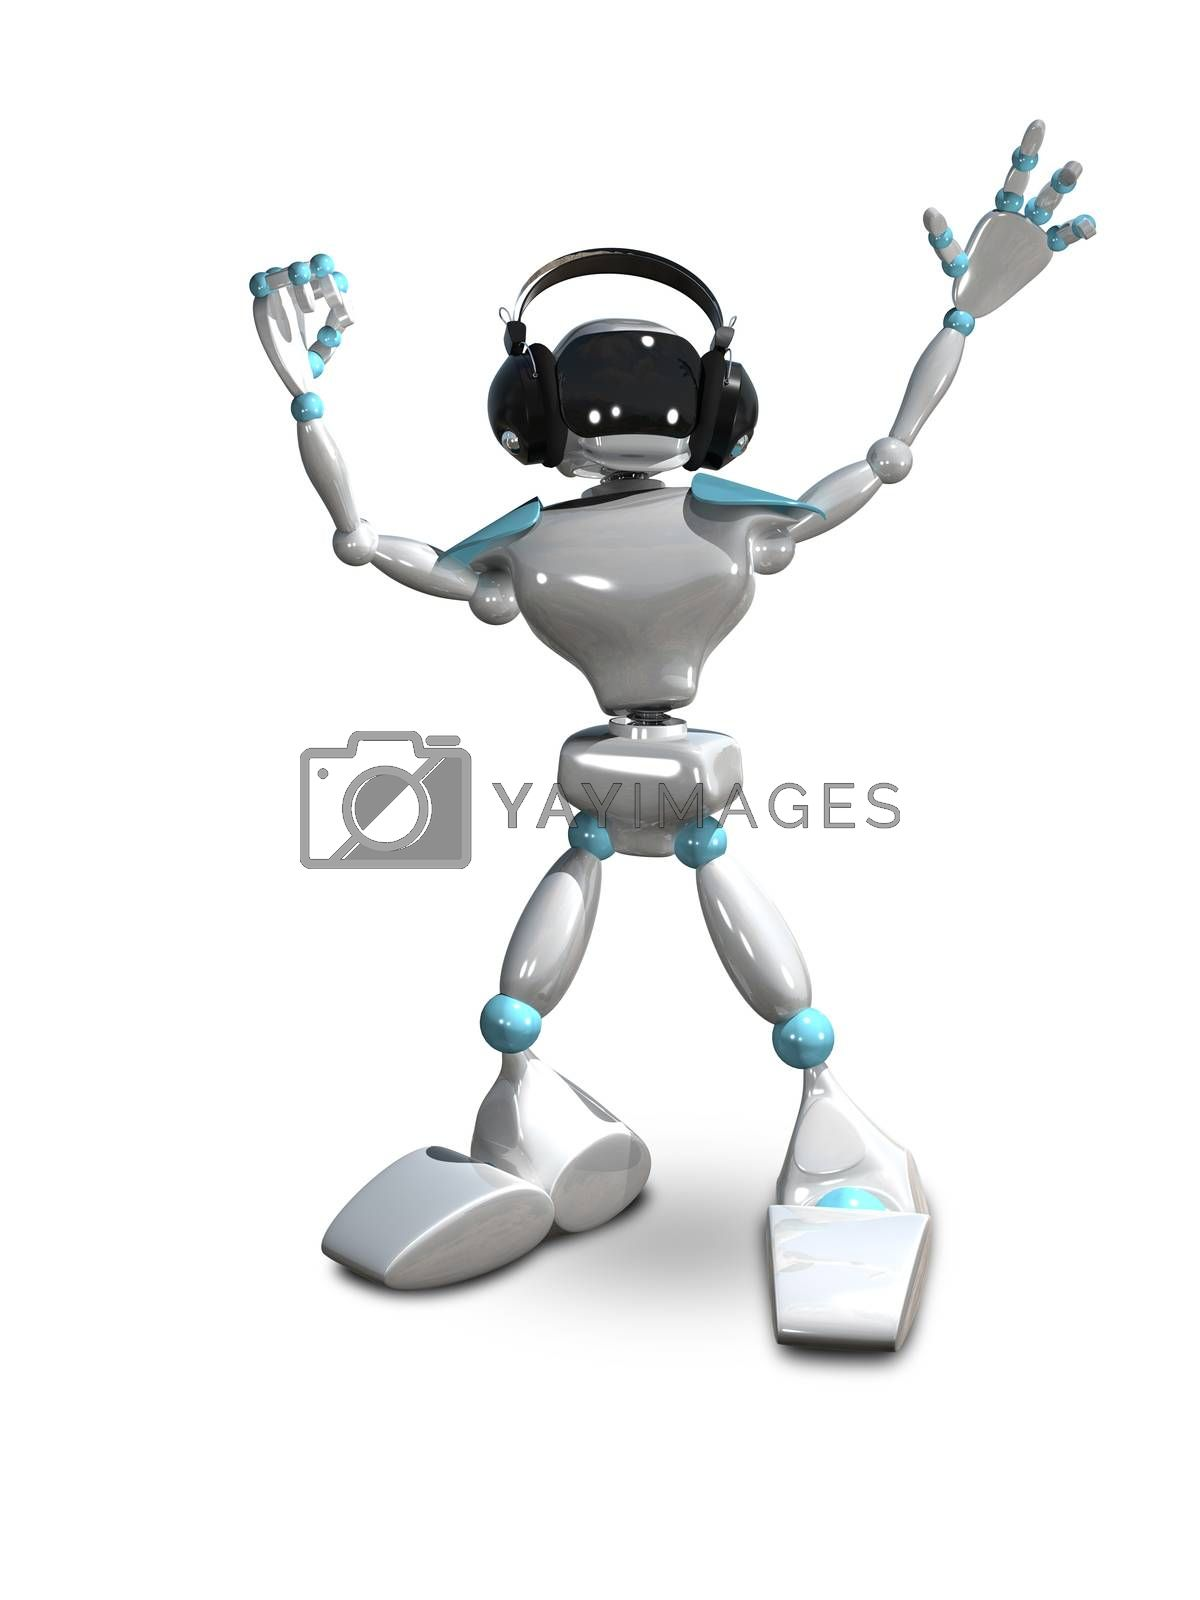 3D Illustration of a White Robot in Headphones